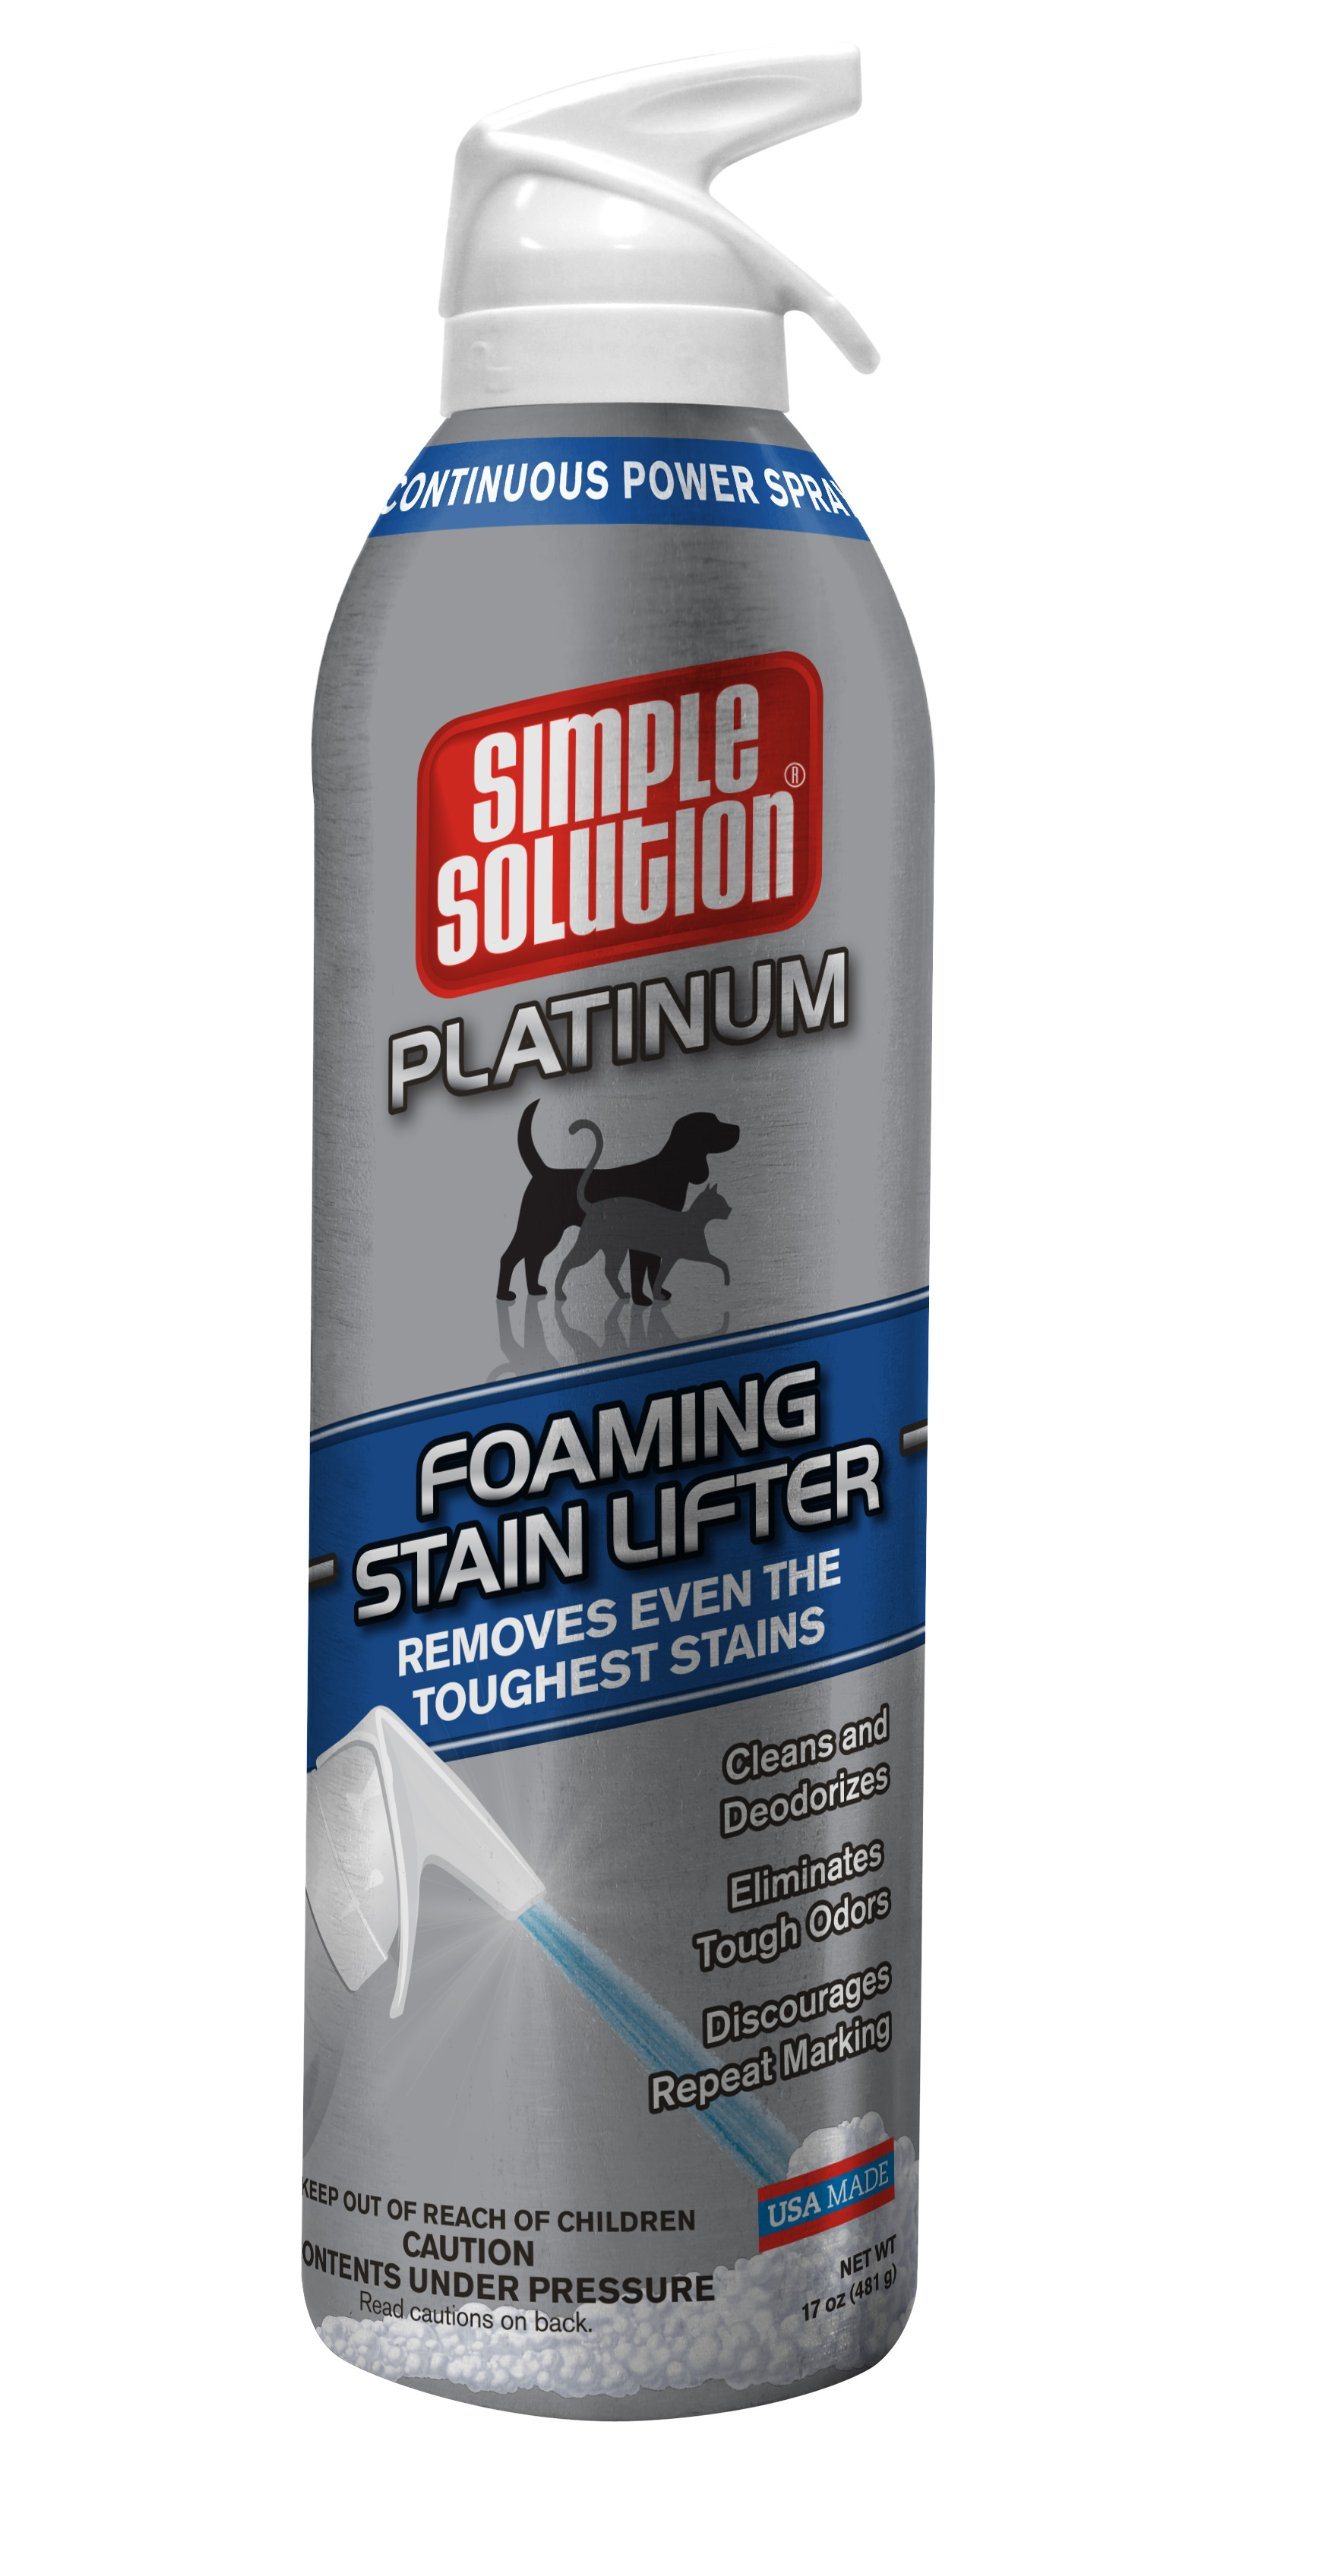 Simple Solution Platinum Foaming Stain Lifter, 17-Ounce